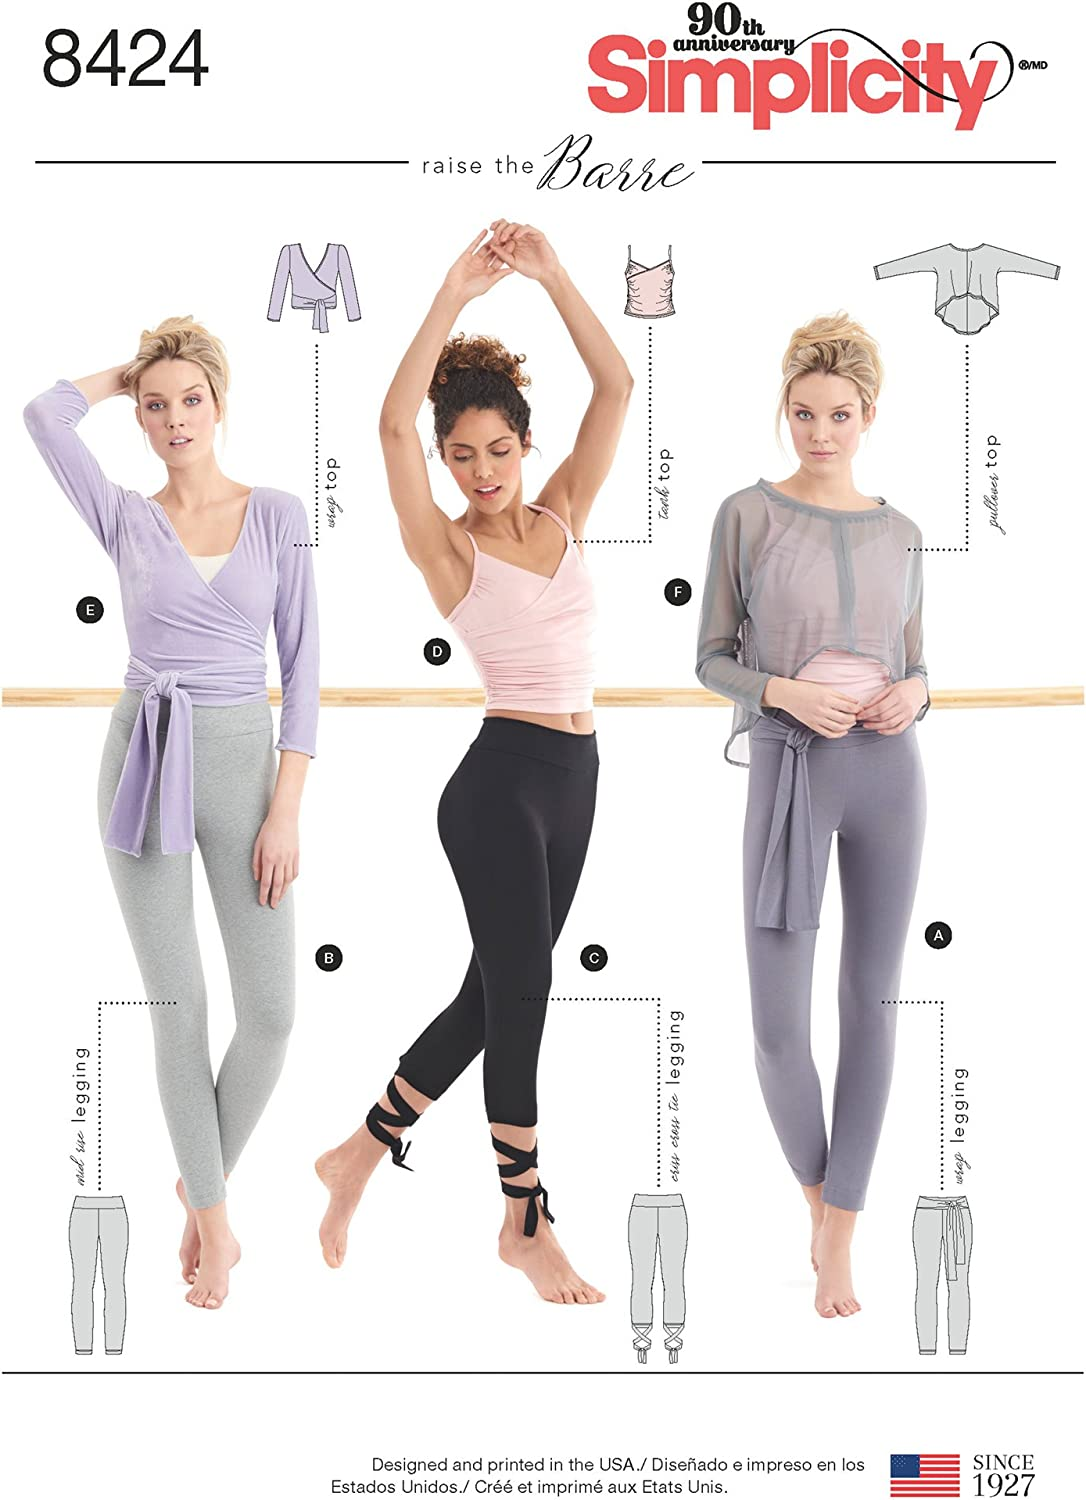 Tank Pullover Top Sewing Patterns Wrap Sizes XXS-XXL Simplicity US8424A Womens Leggings